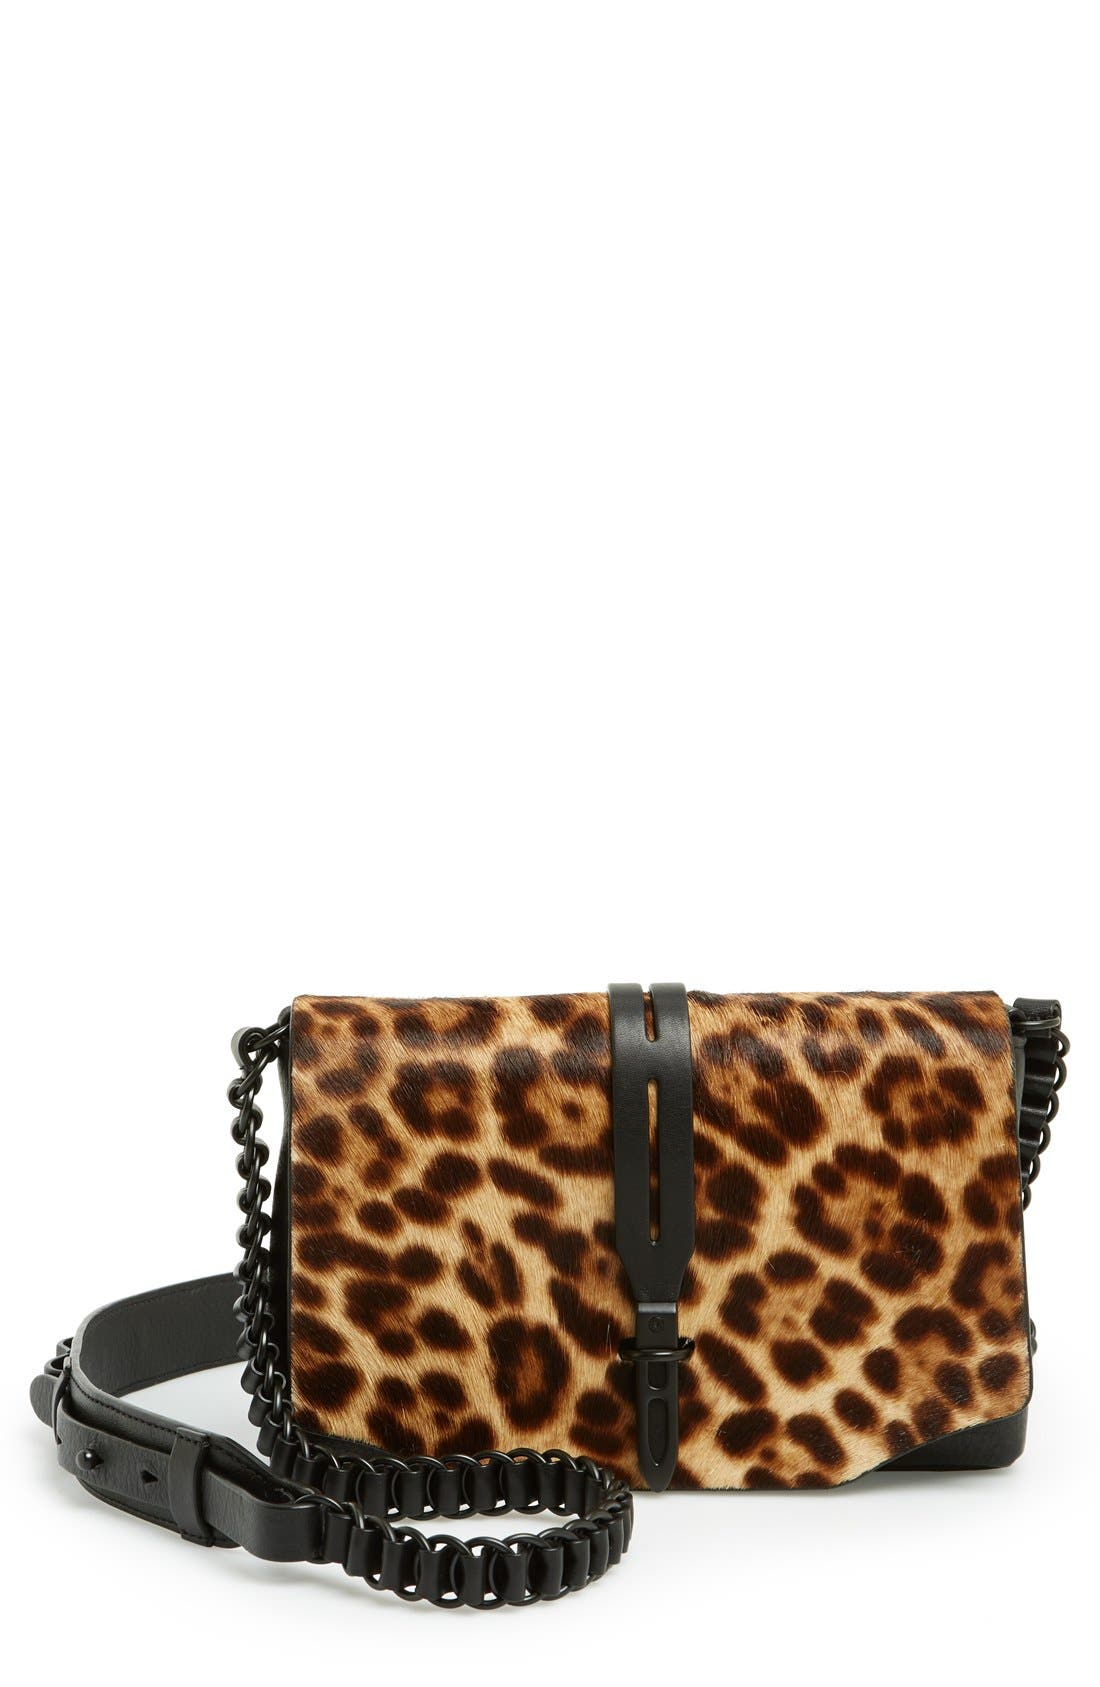 Main Image - rag & bone 'Mini Enfield' Genuine Calf Hair & Leather Crossbody Bag